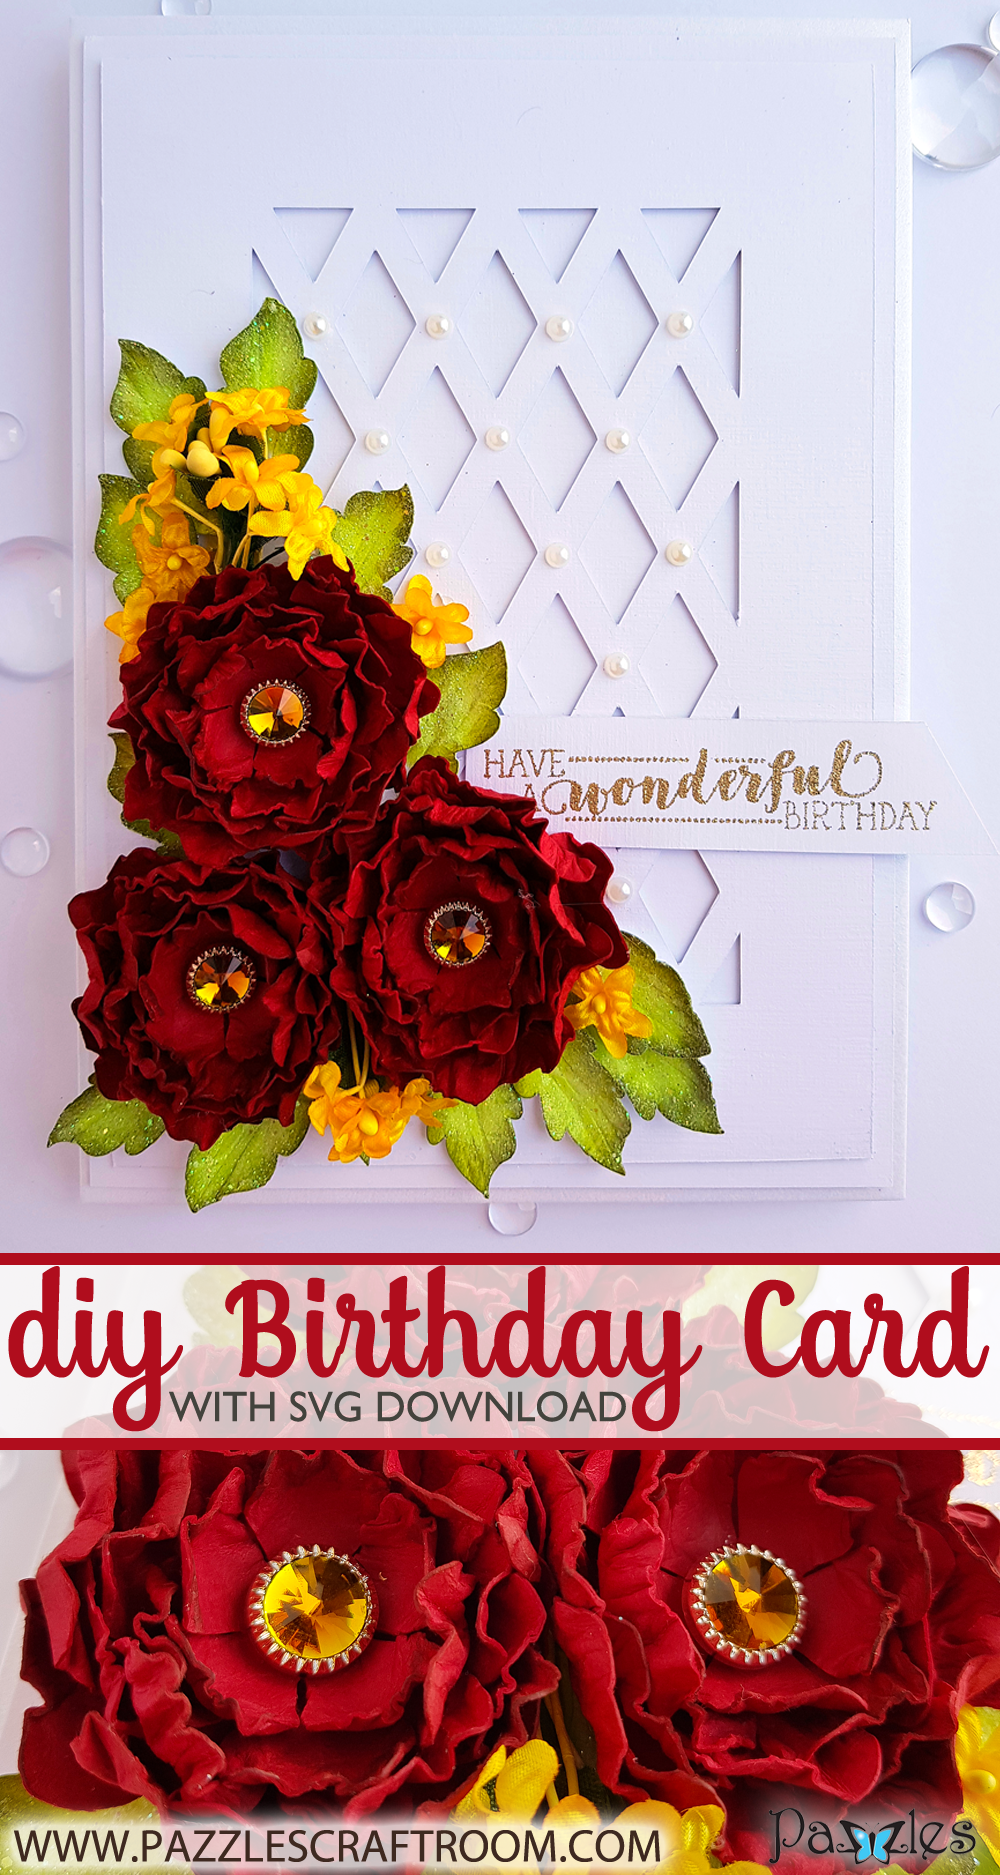 Pazzles Wonderful DIY Rose Birthday Card Red and White with Paper Flowers by Nida Tanweer. Svg Download included, compatible with all major electronic cutters including Pazzles Inspiration, Cricut, and Silhouette Cameo.